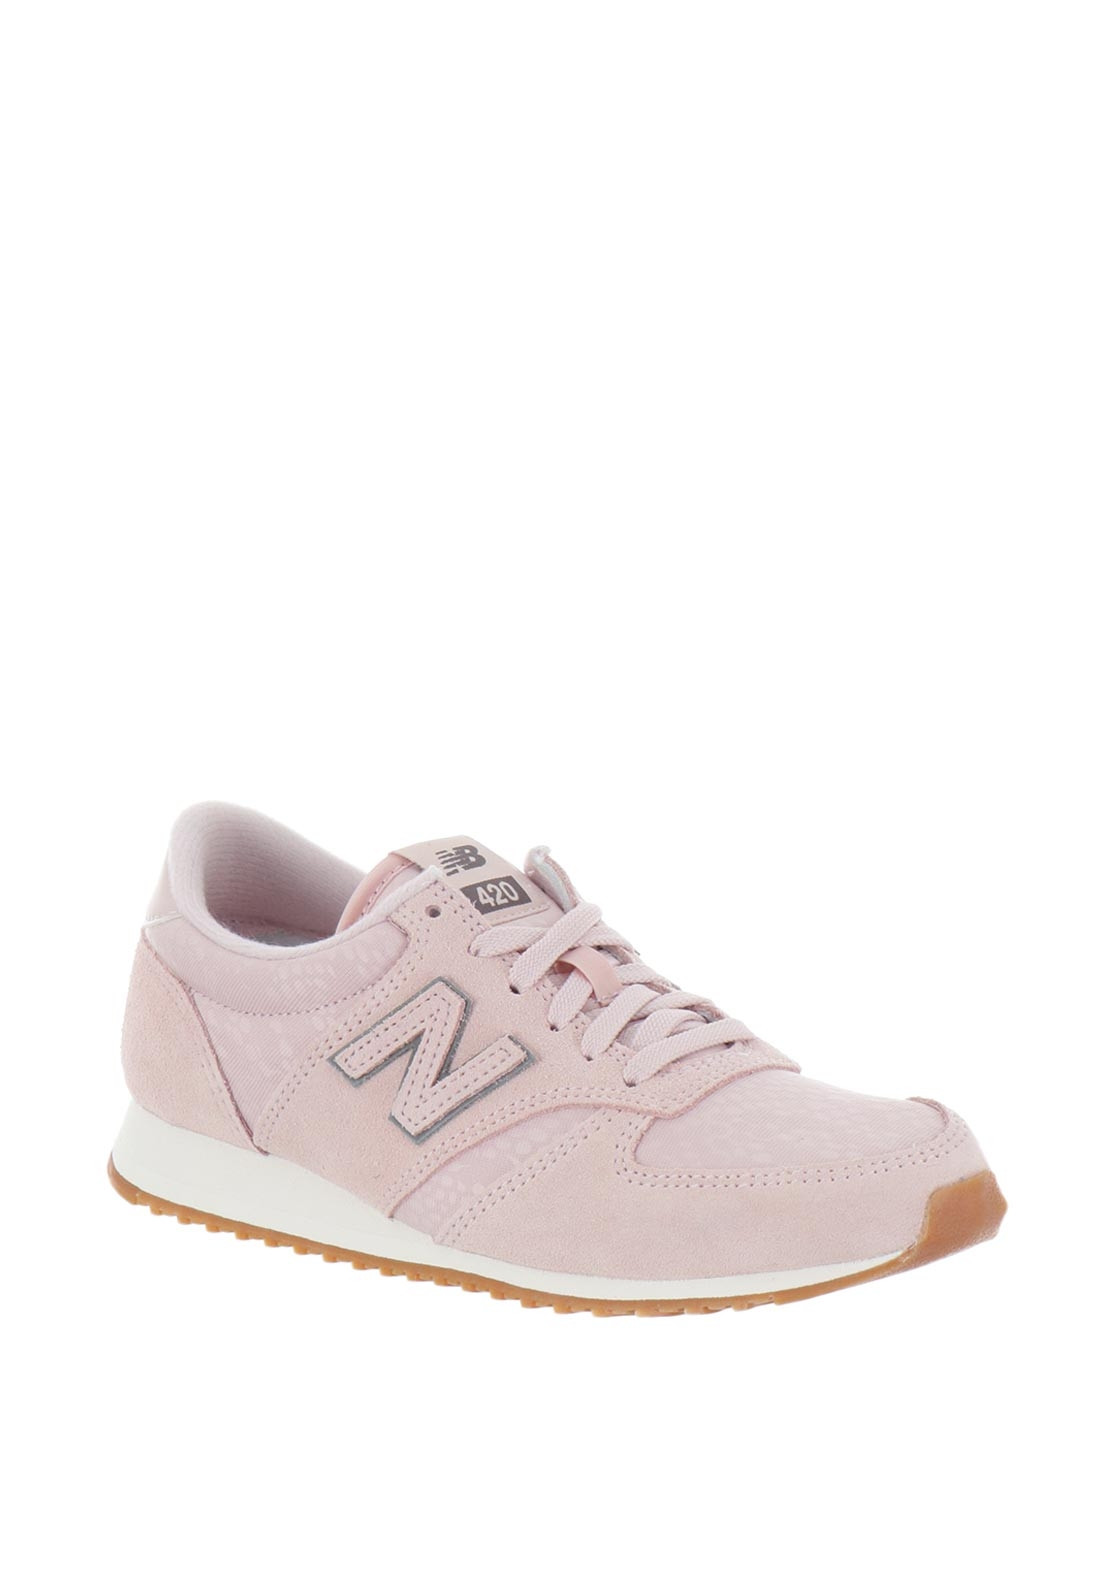 grand choix de 7a9af 84ee0 New Balance Womens 420 Suede Mix Trainers, Pink